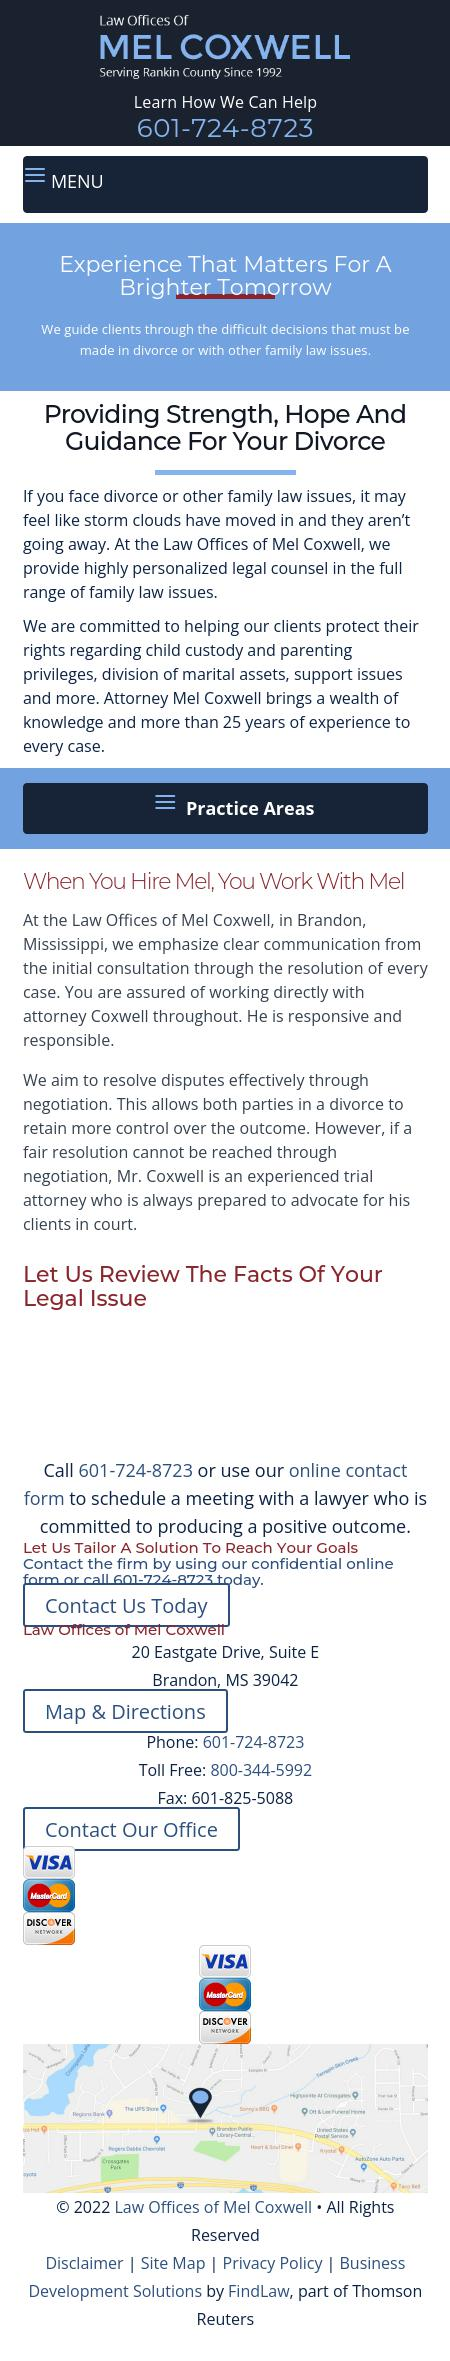 Law Offices of Mel Coxwell - Brandon MS Lawyers